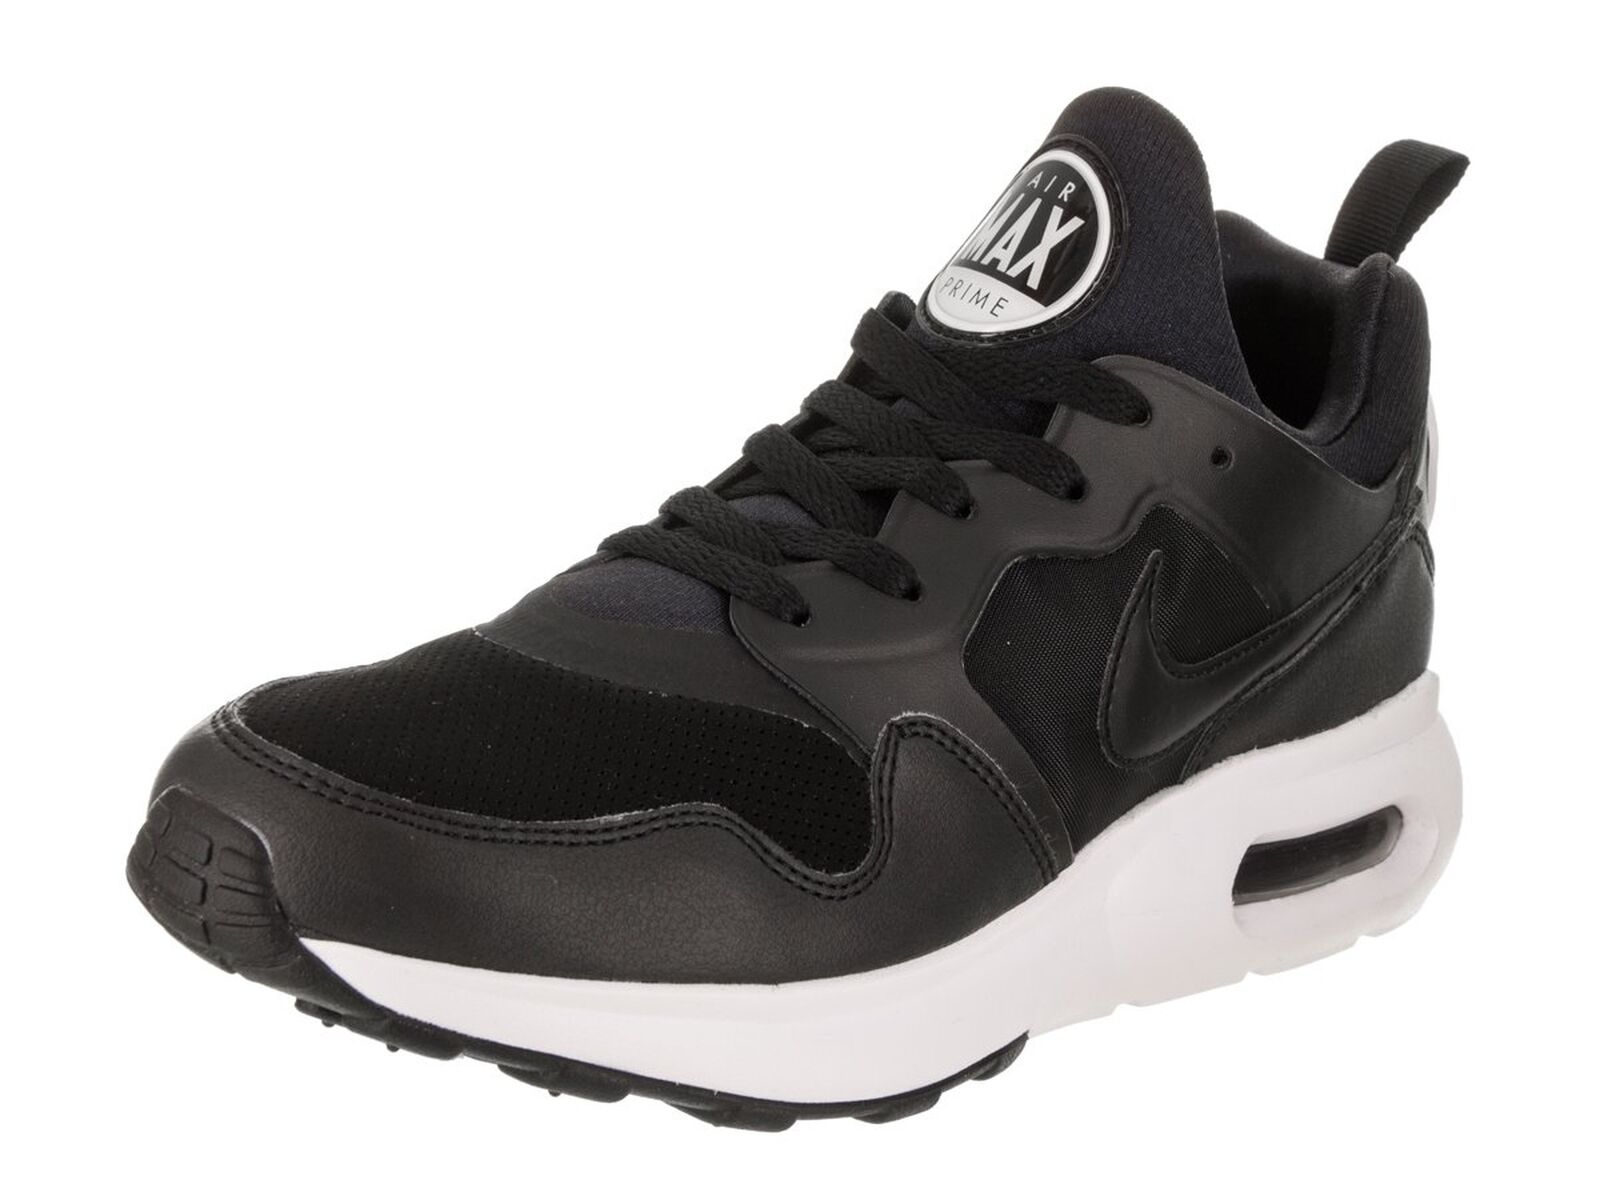 Nike Men's Air Max Prime SL Running shoes Size 8.5 NEW 876069 002 Black White